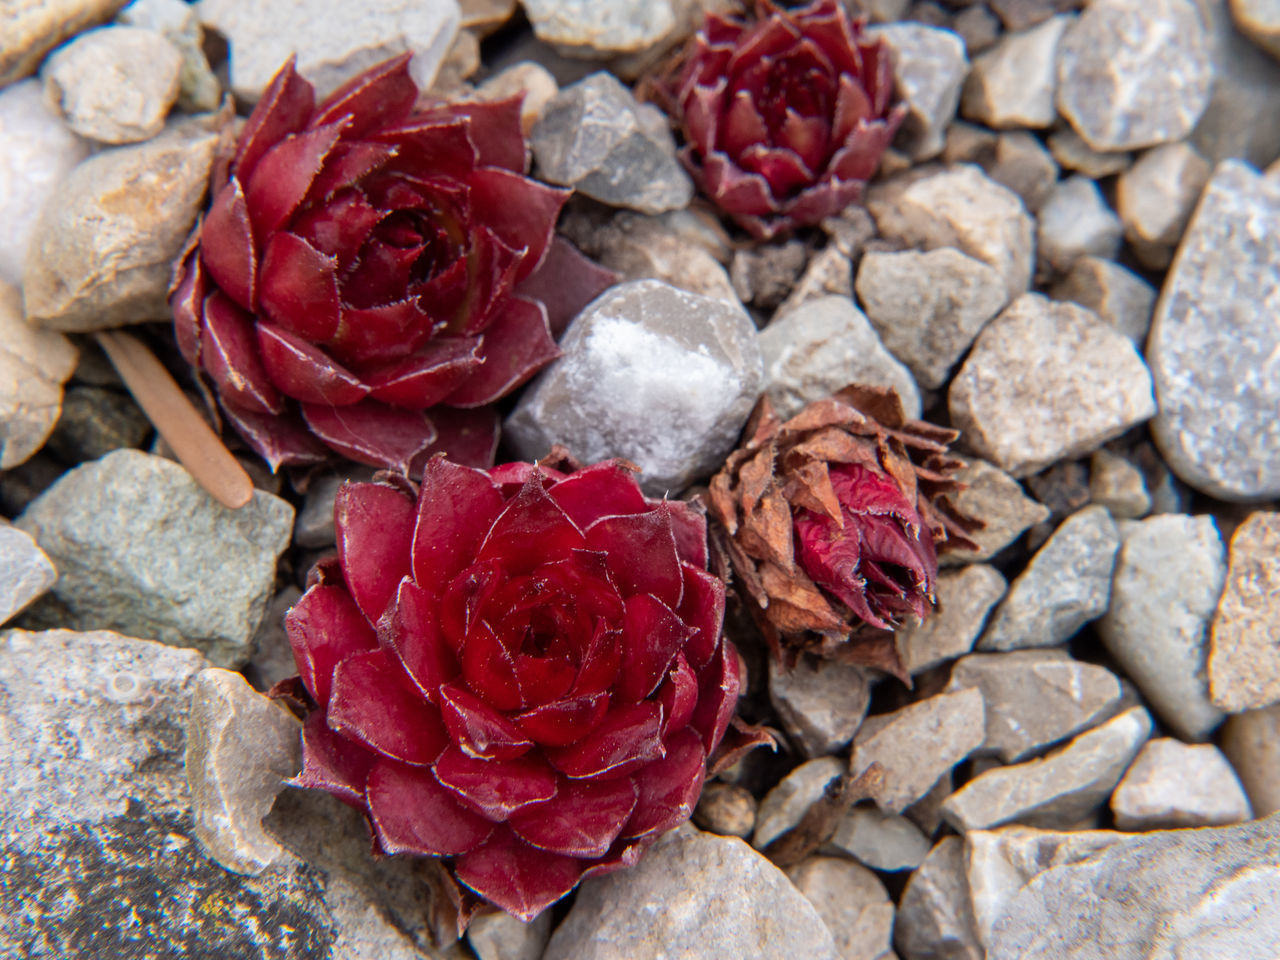 CLOSE-UP OF RED ROSE ON ROCKS